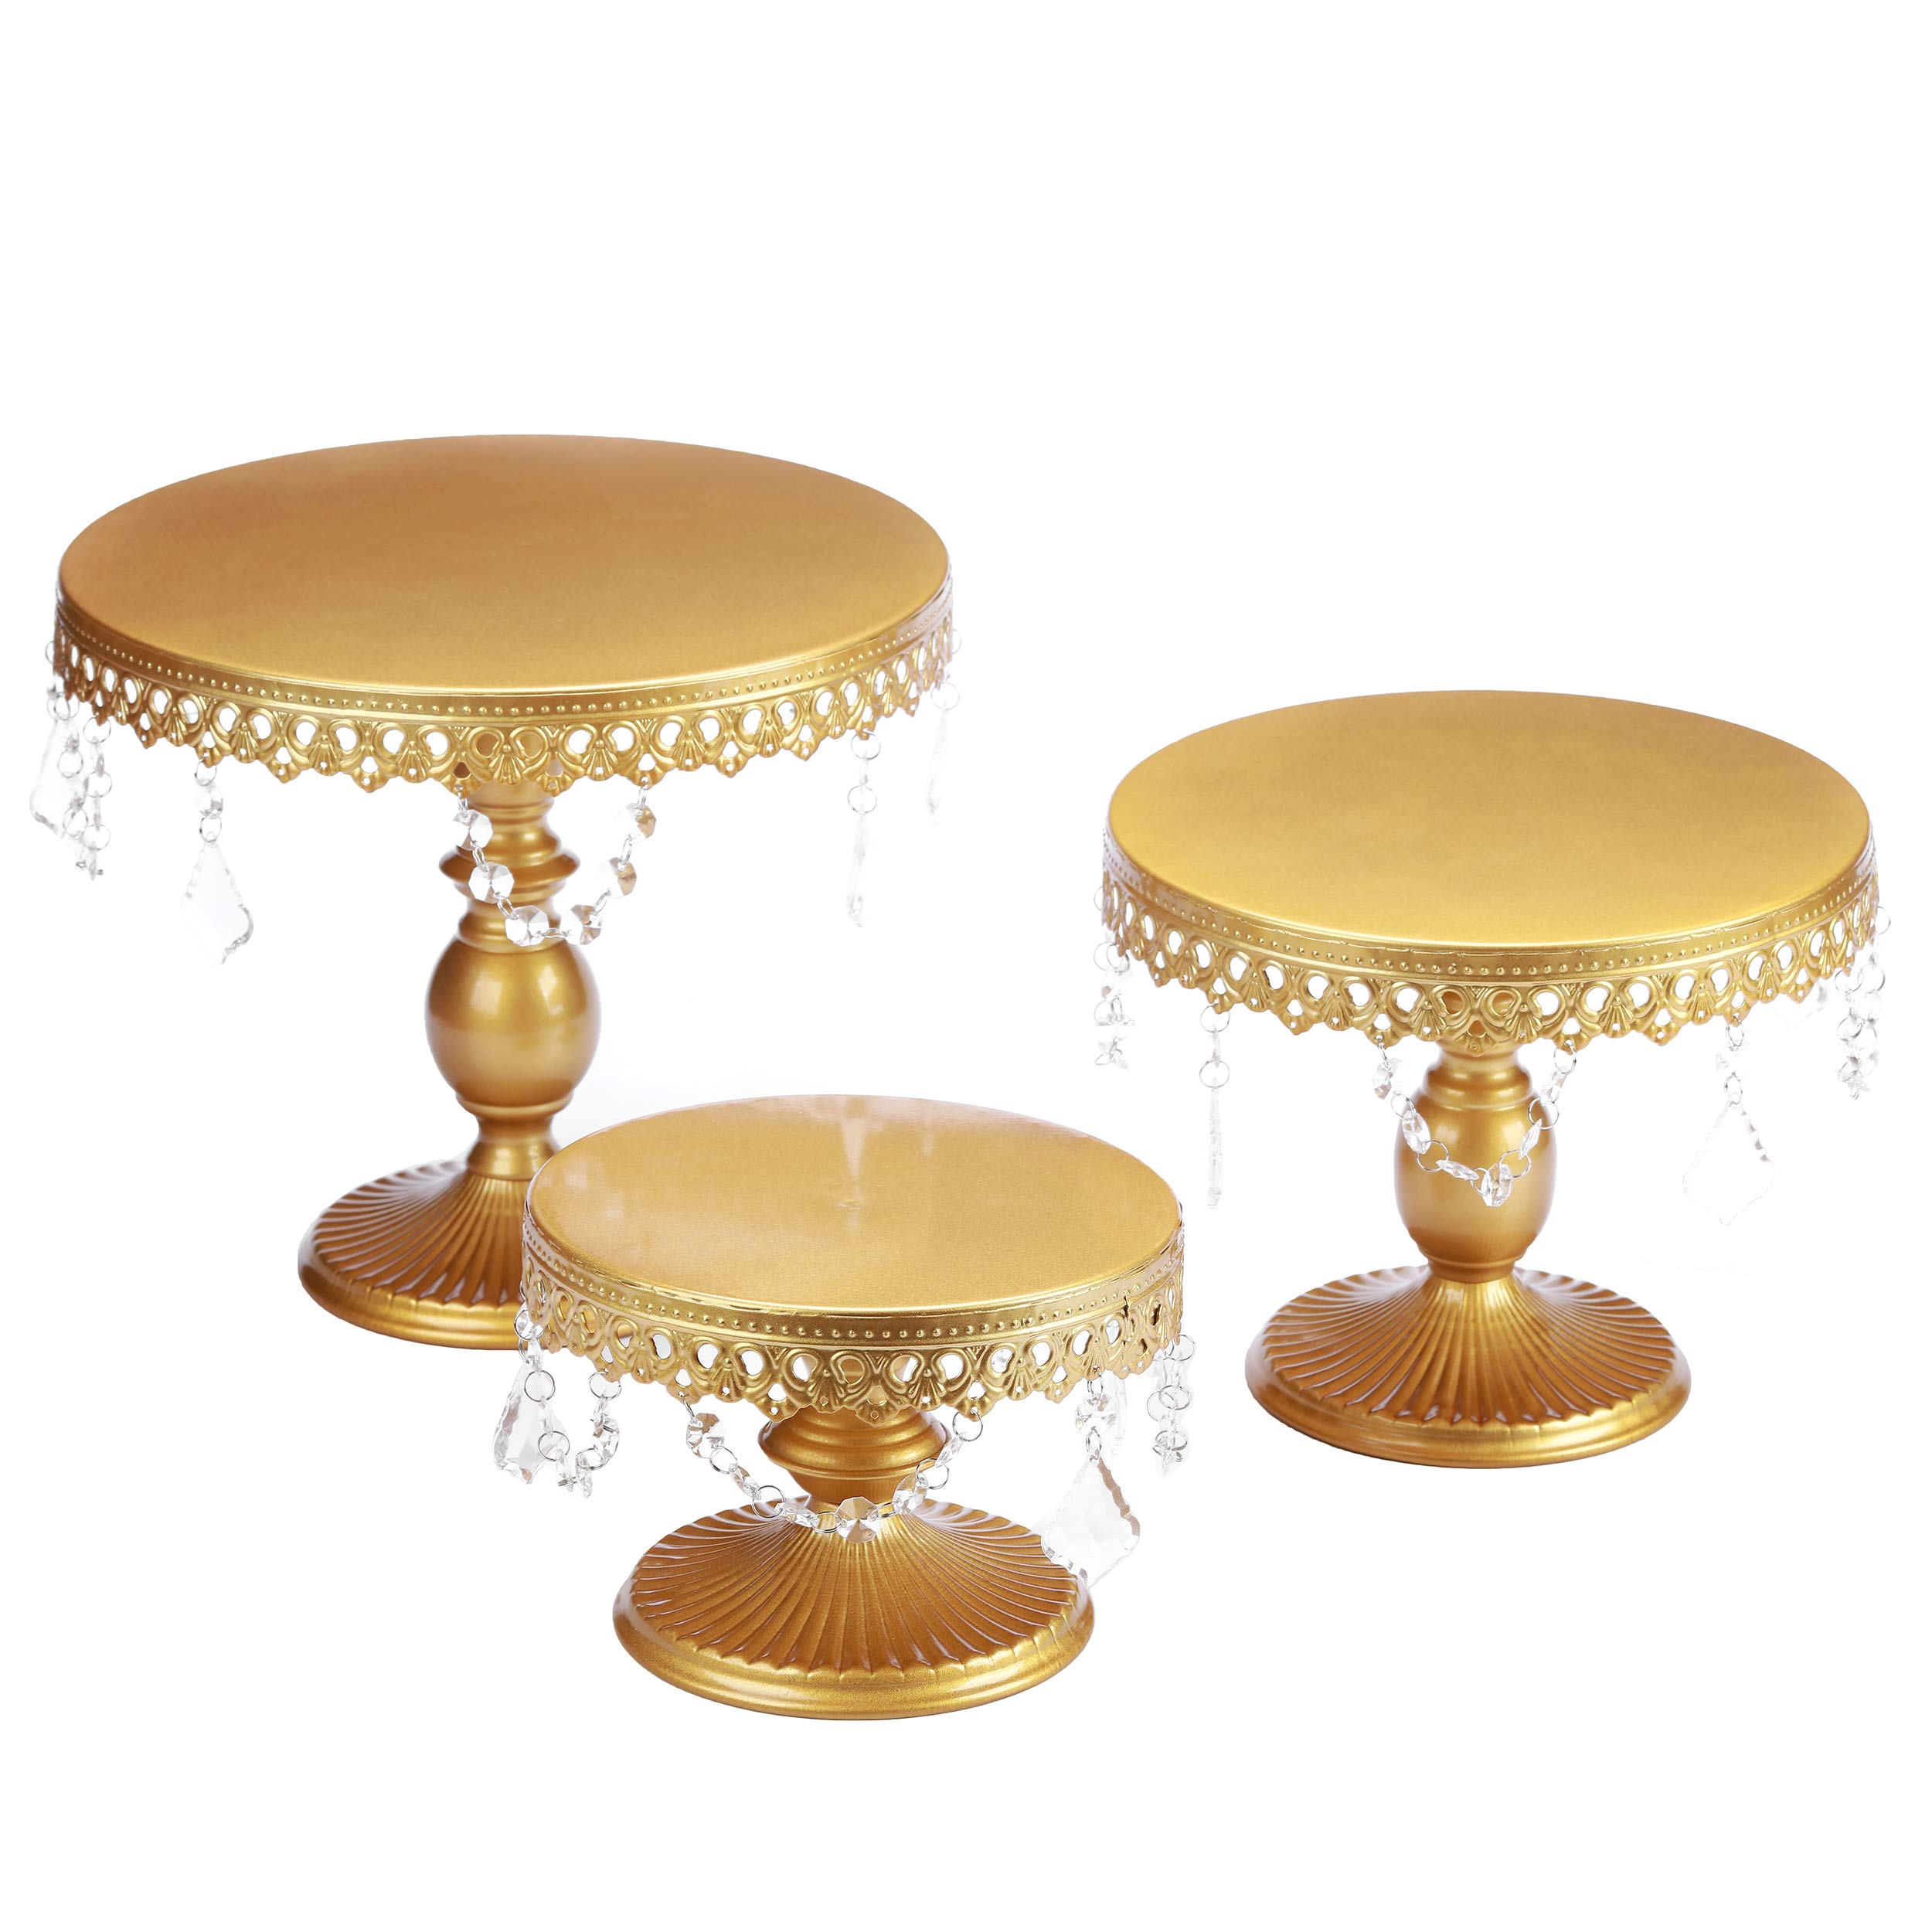 VILAVITA 3-Set Antique Cake Stand Round Cupcake Stands Metal Dessert Display with Pendants and Beads, Gold by VILAVITA